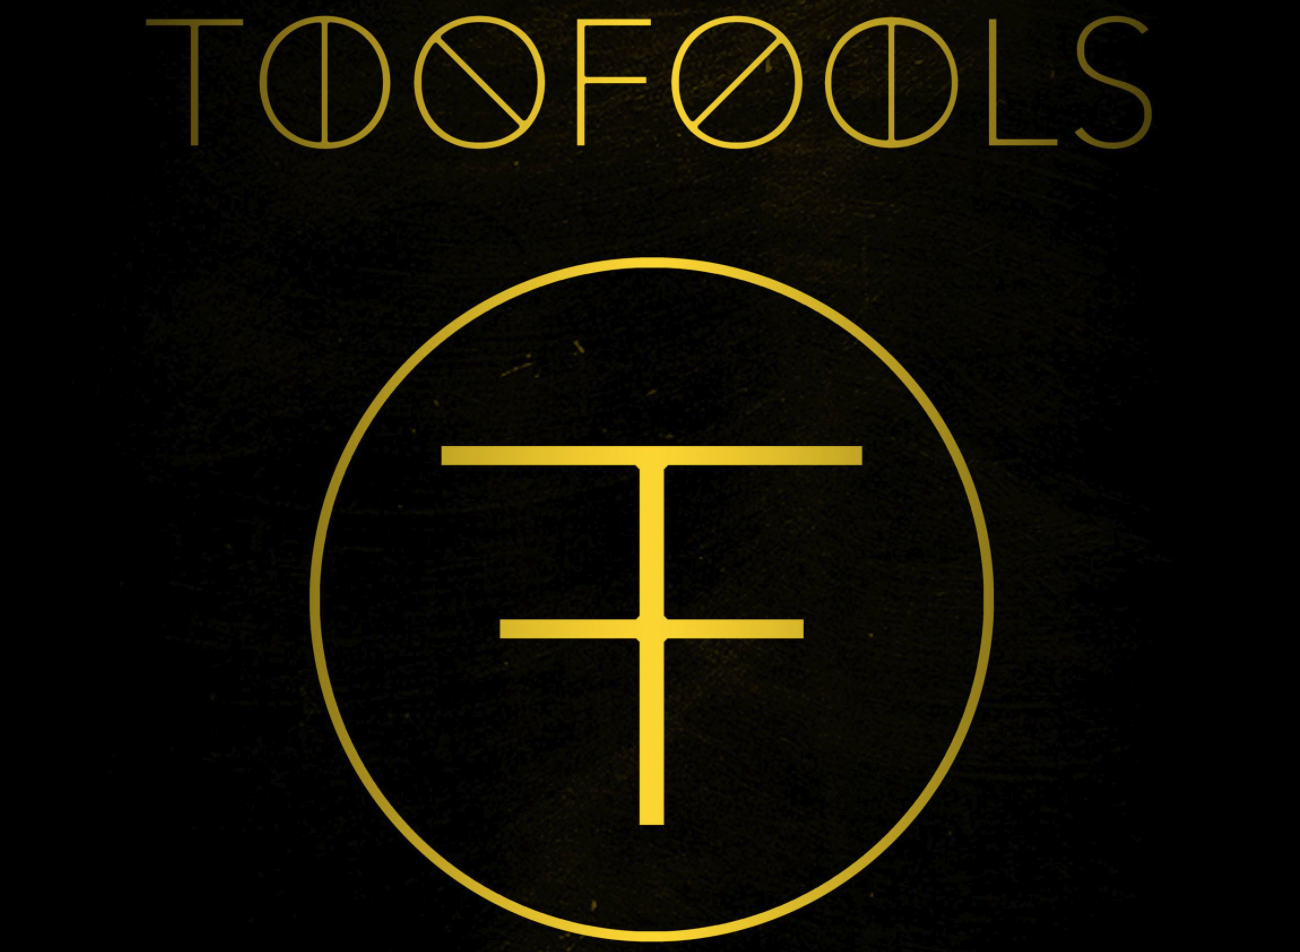 Too Fools - Irish Band Of The Week